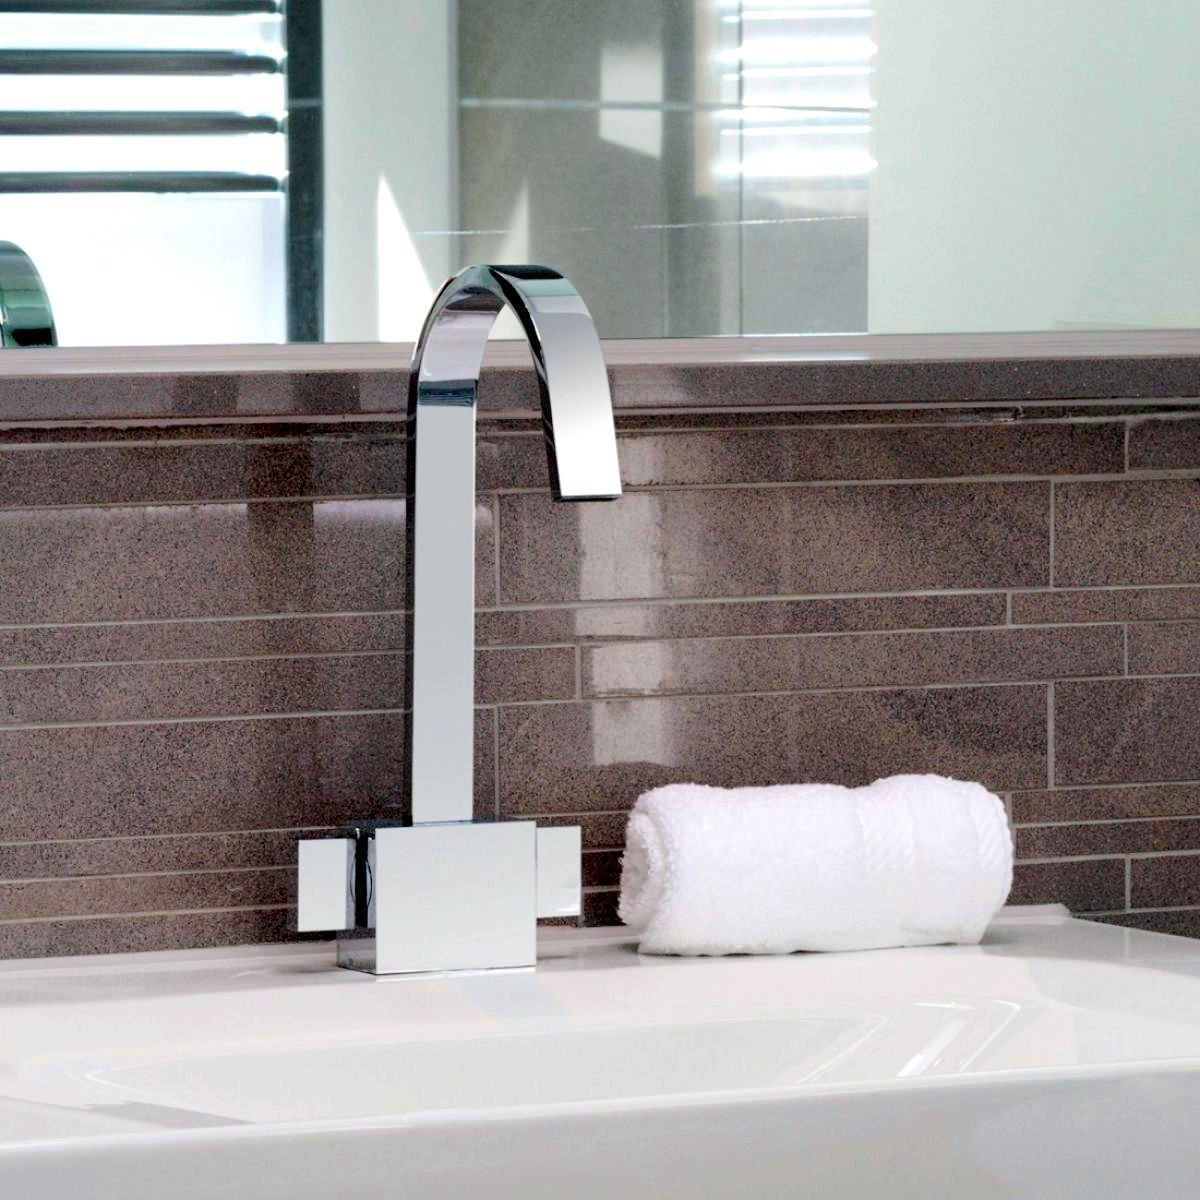 Geo Bathroom Tap Collection From £171.50